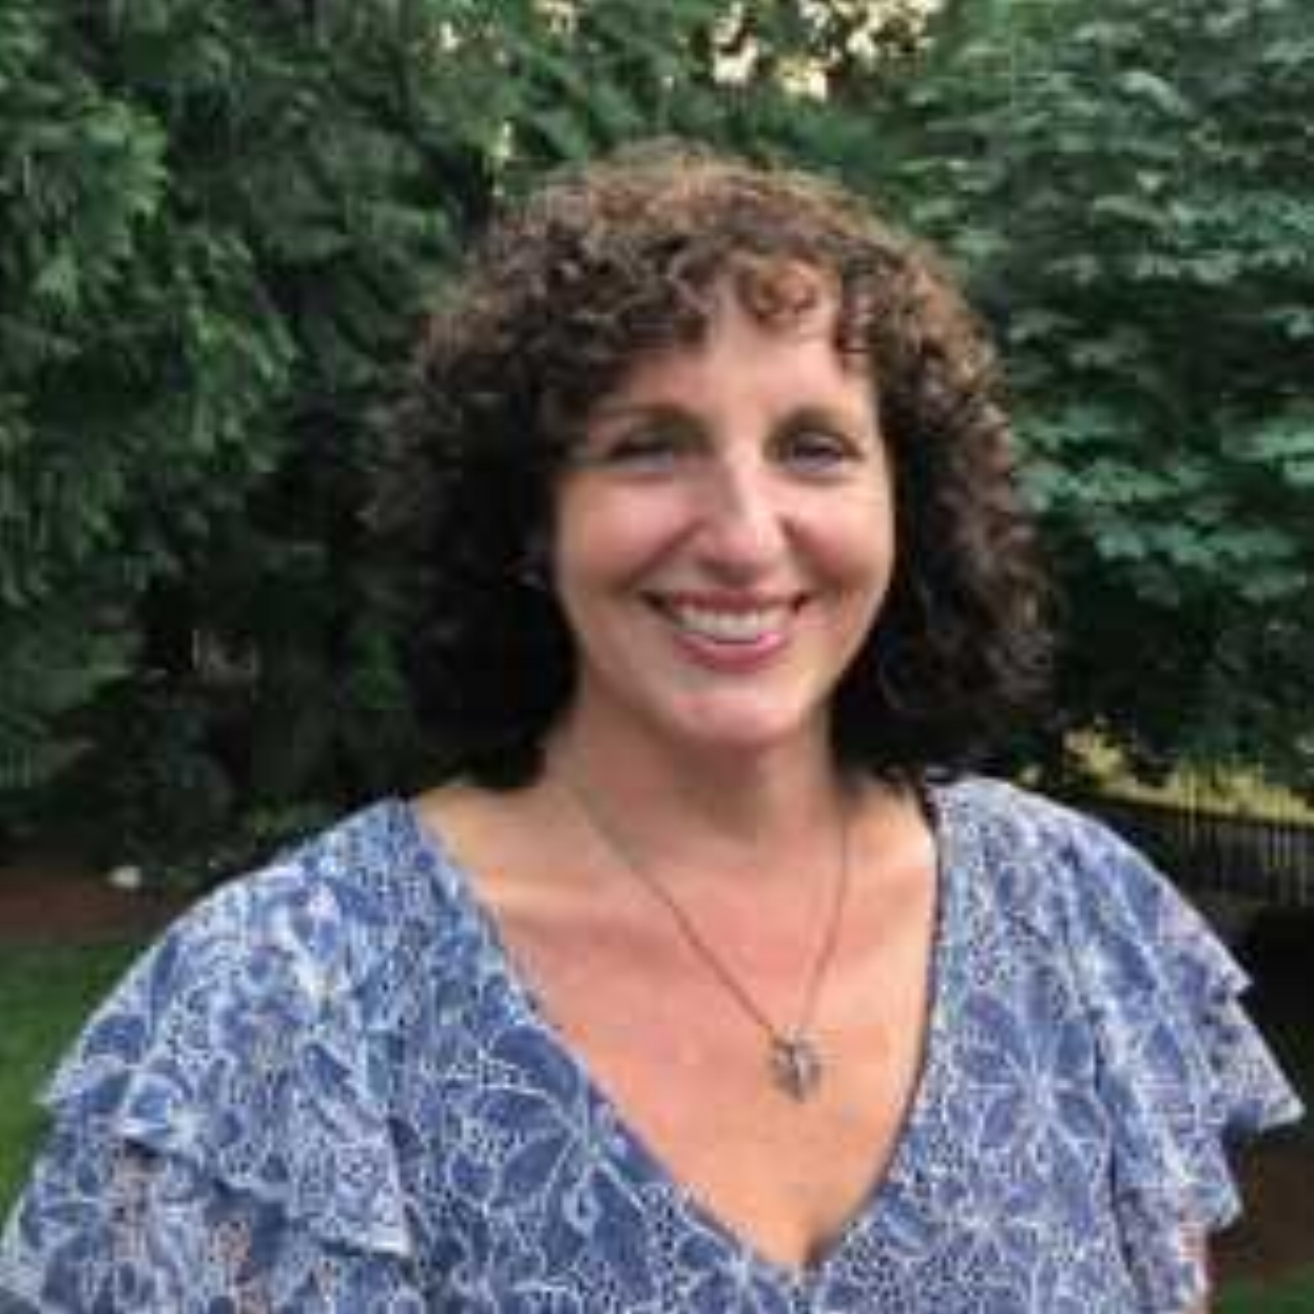 Theresa Winther, MA, LMFT - Serves ages 14+ in our Bothell office